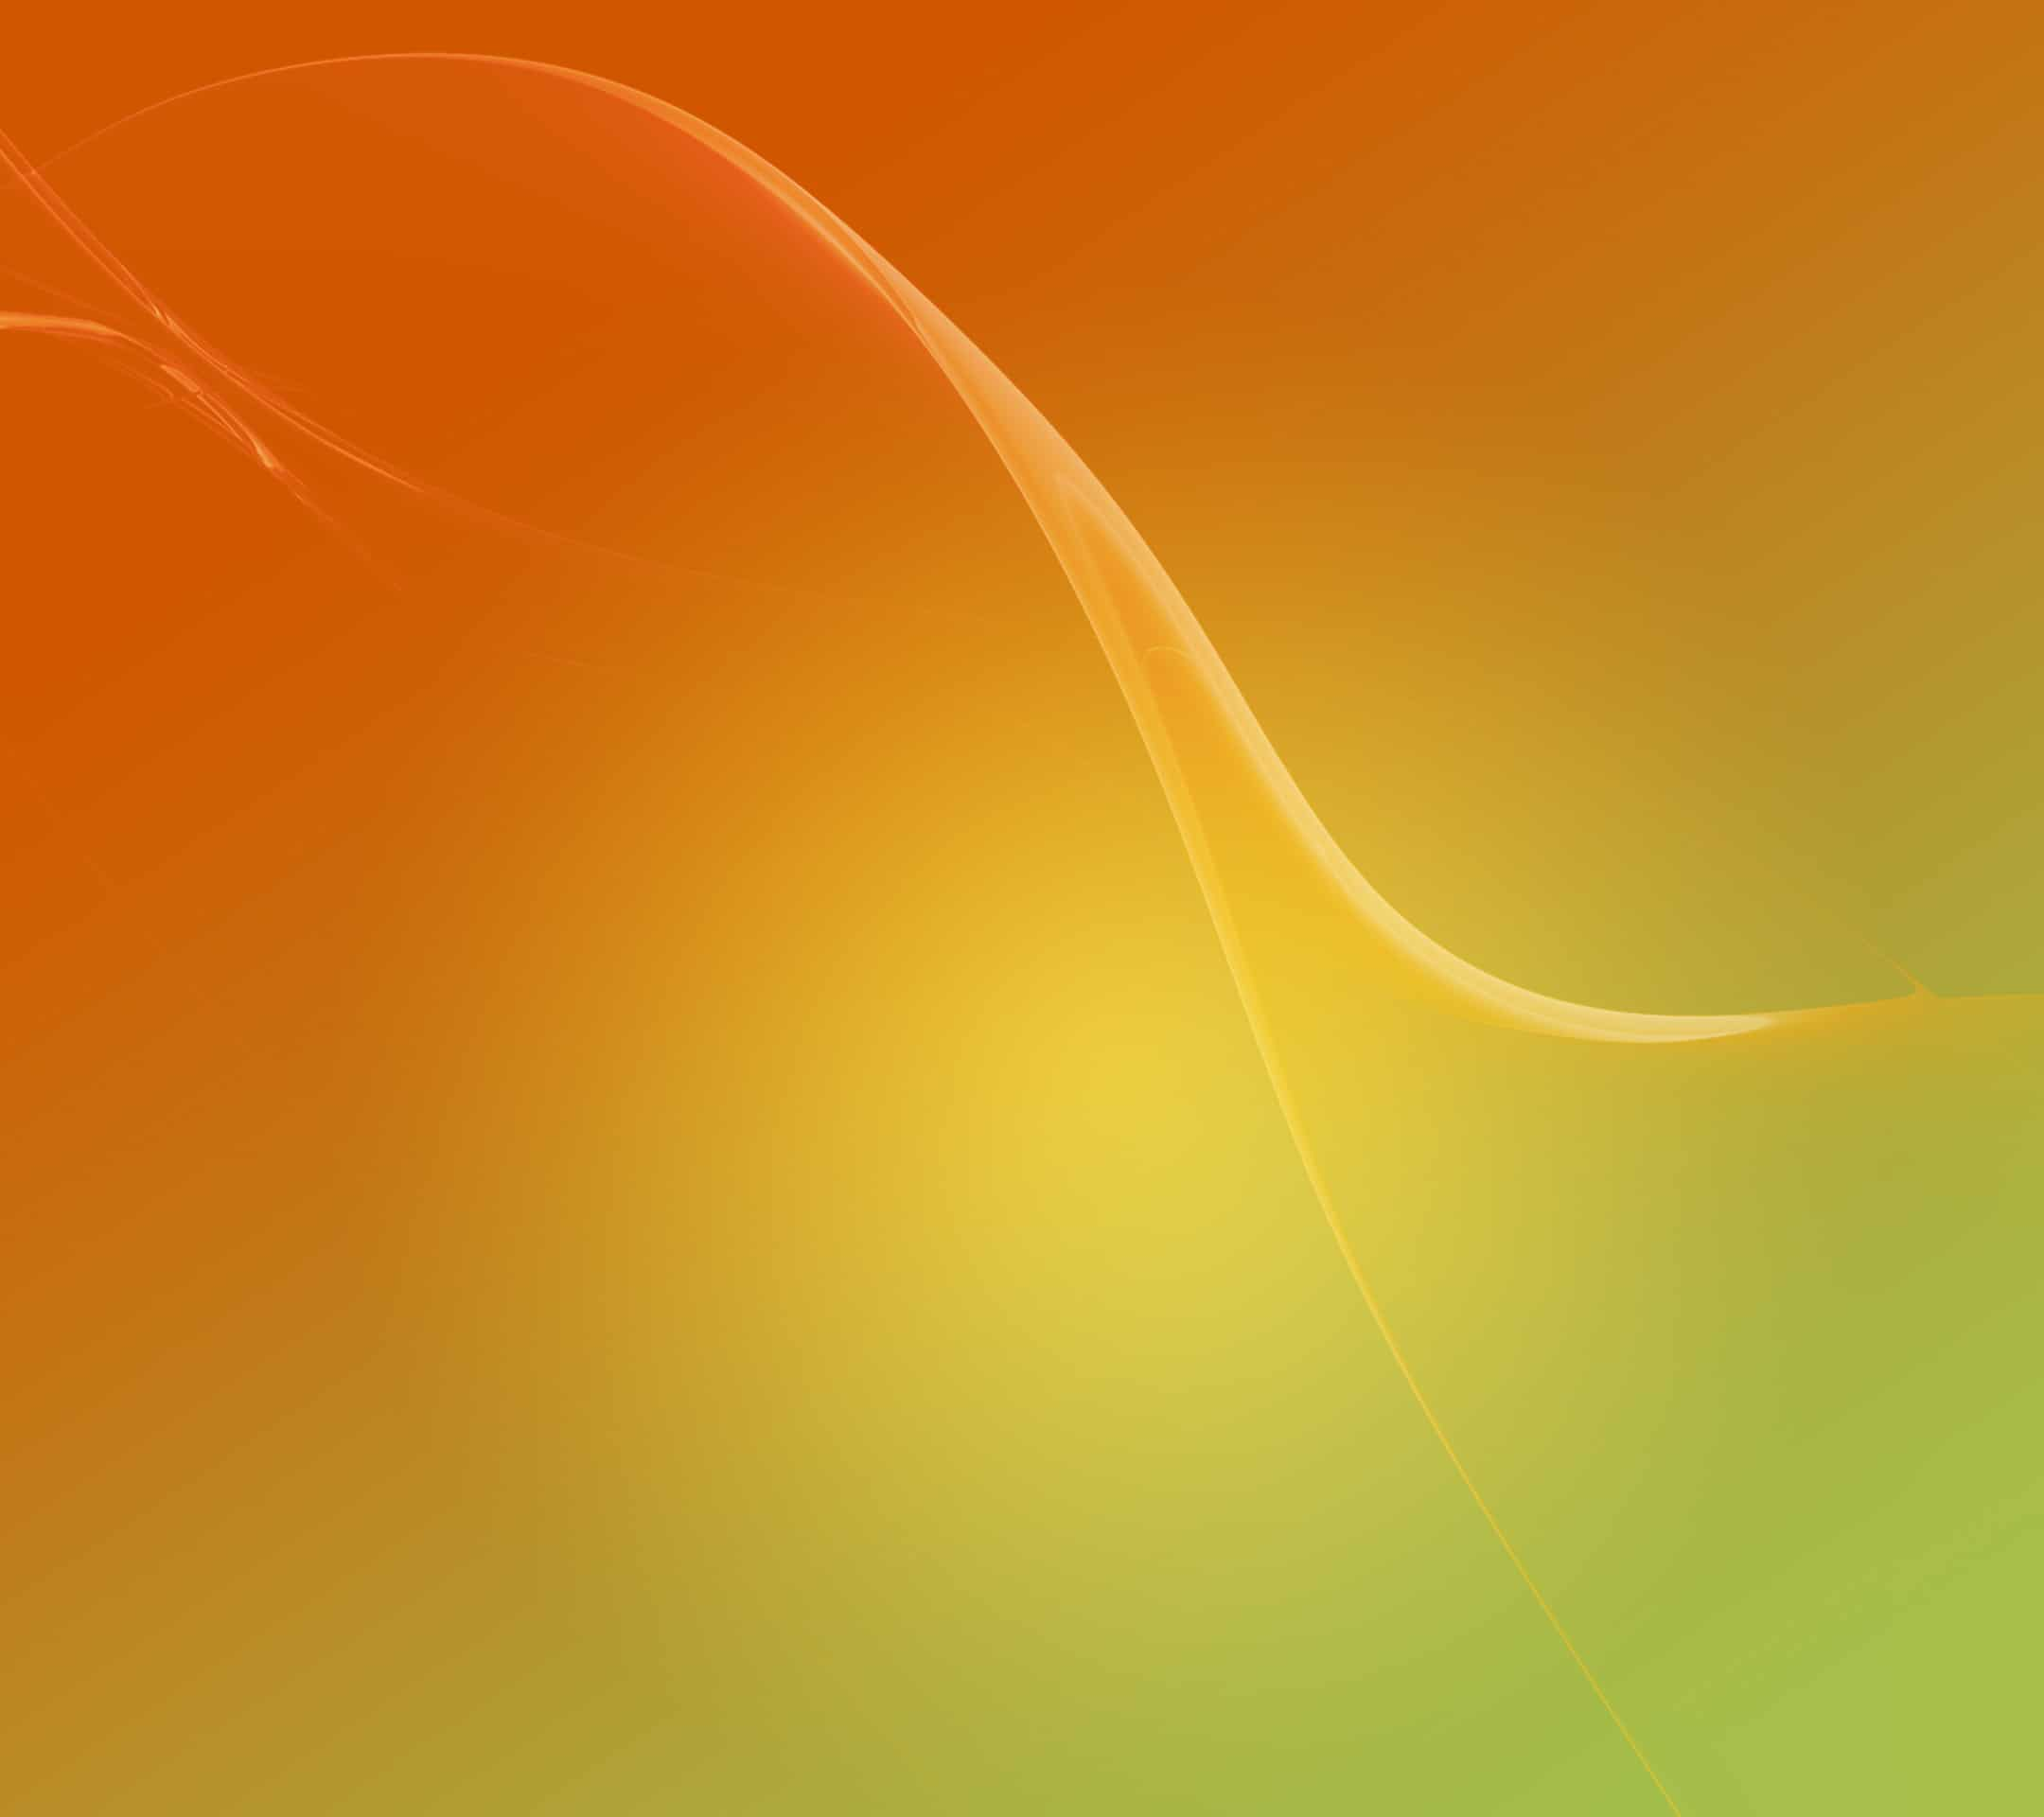 Xperia Yellow Wallpaper Galaxy-s5-xperia-z2-and-lg-g